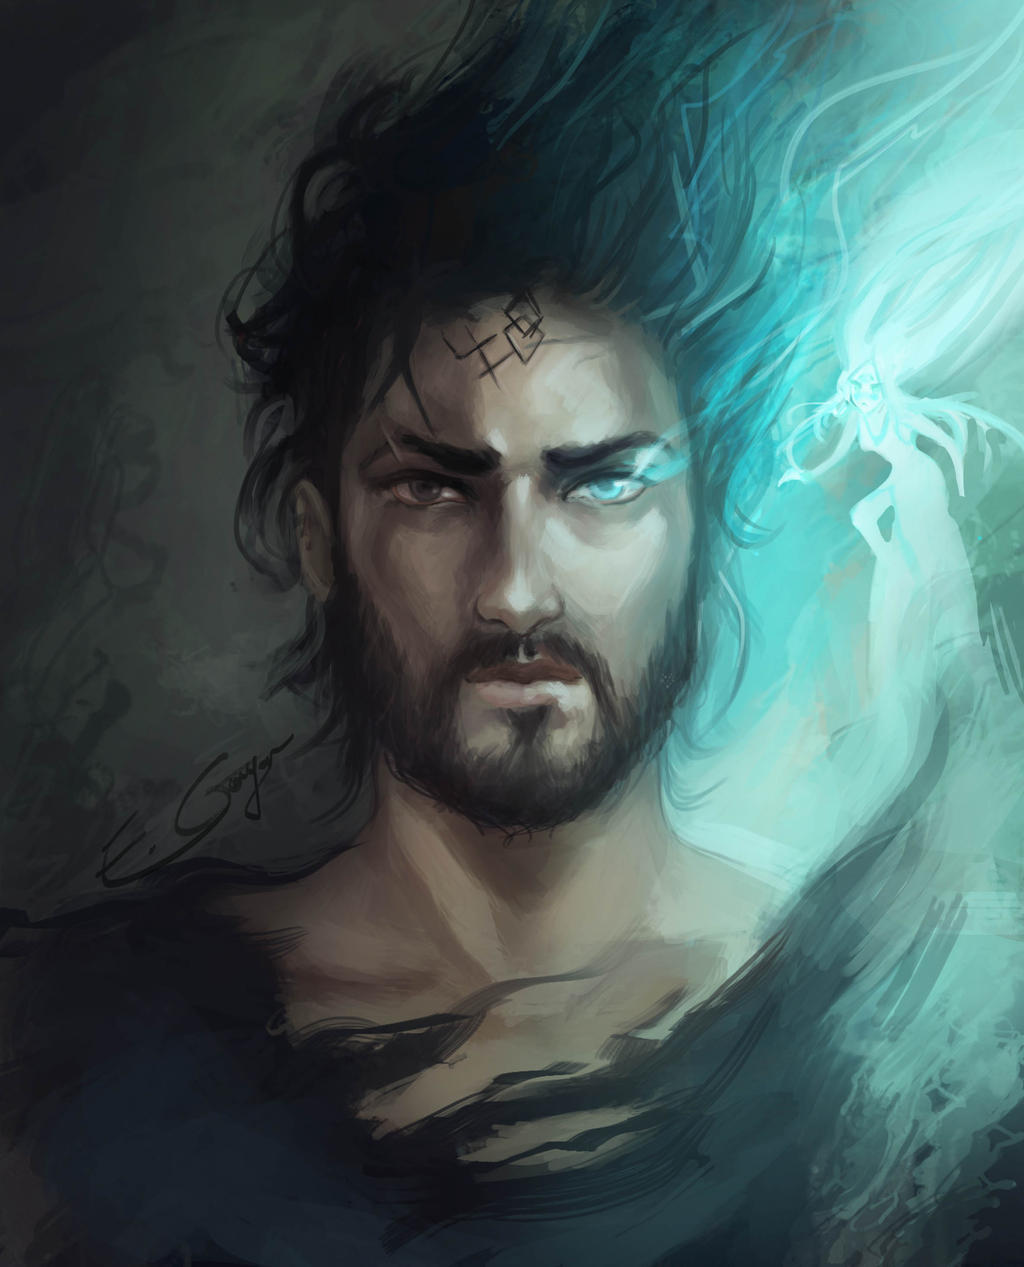 kaladin_stormblessed_by_emmgoyer7-d8jnvn